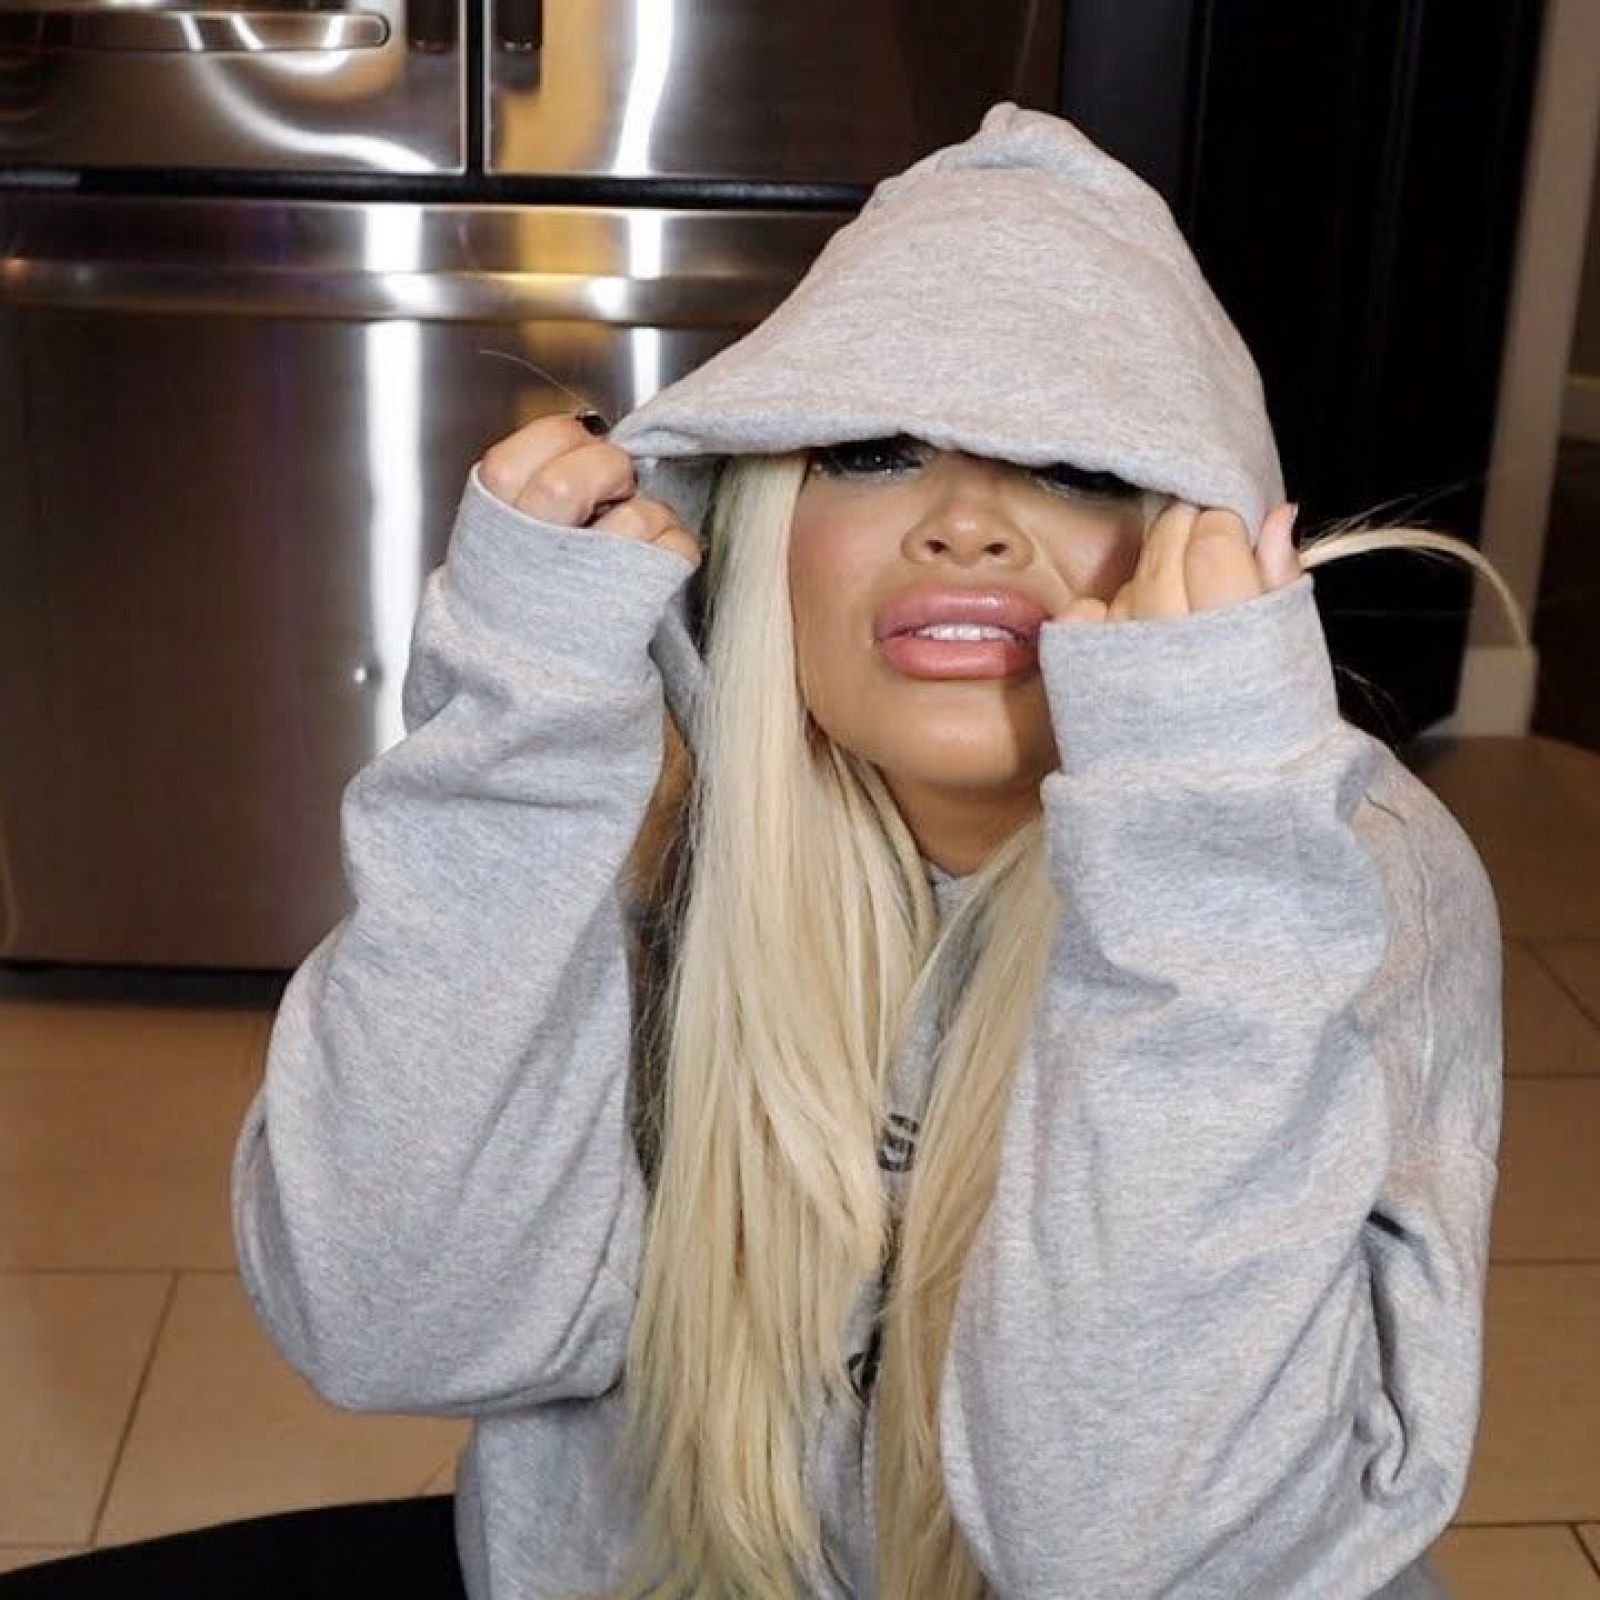 Is Trisha Paytas Canceled? Controversial YouTuber Continues to Lose